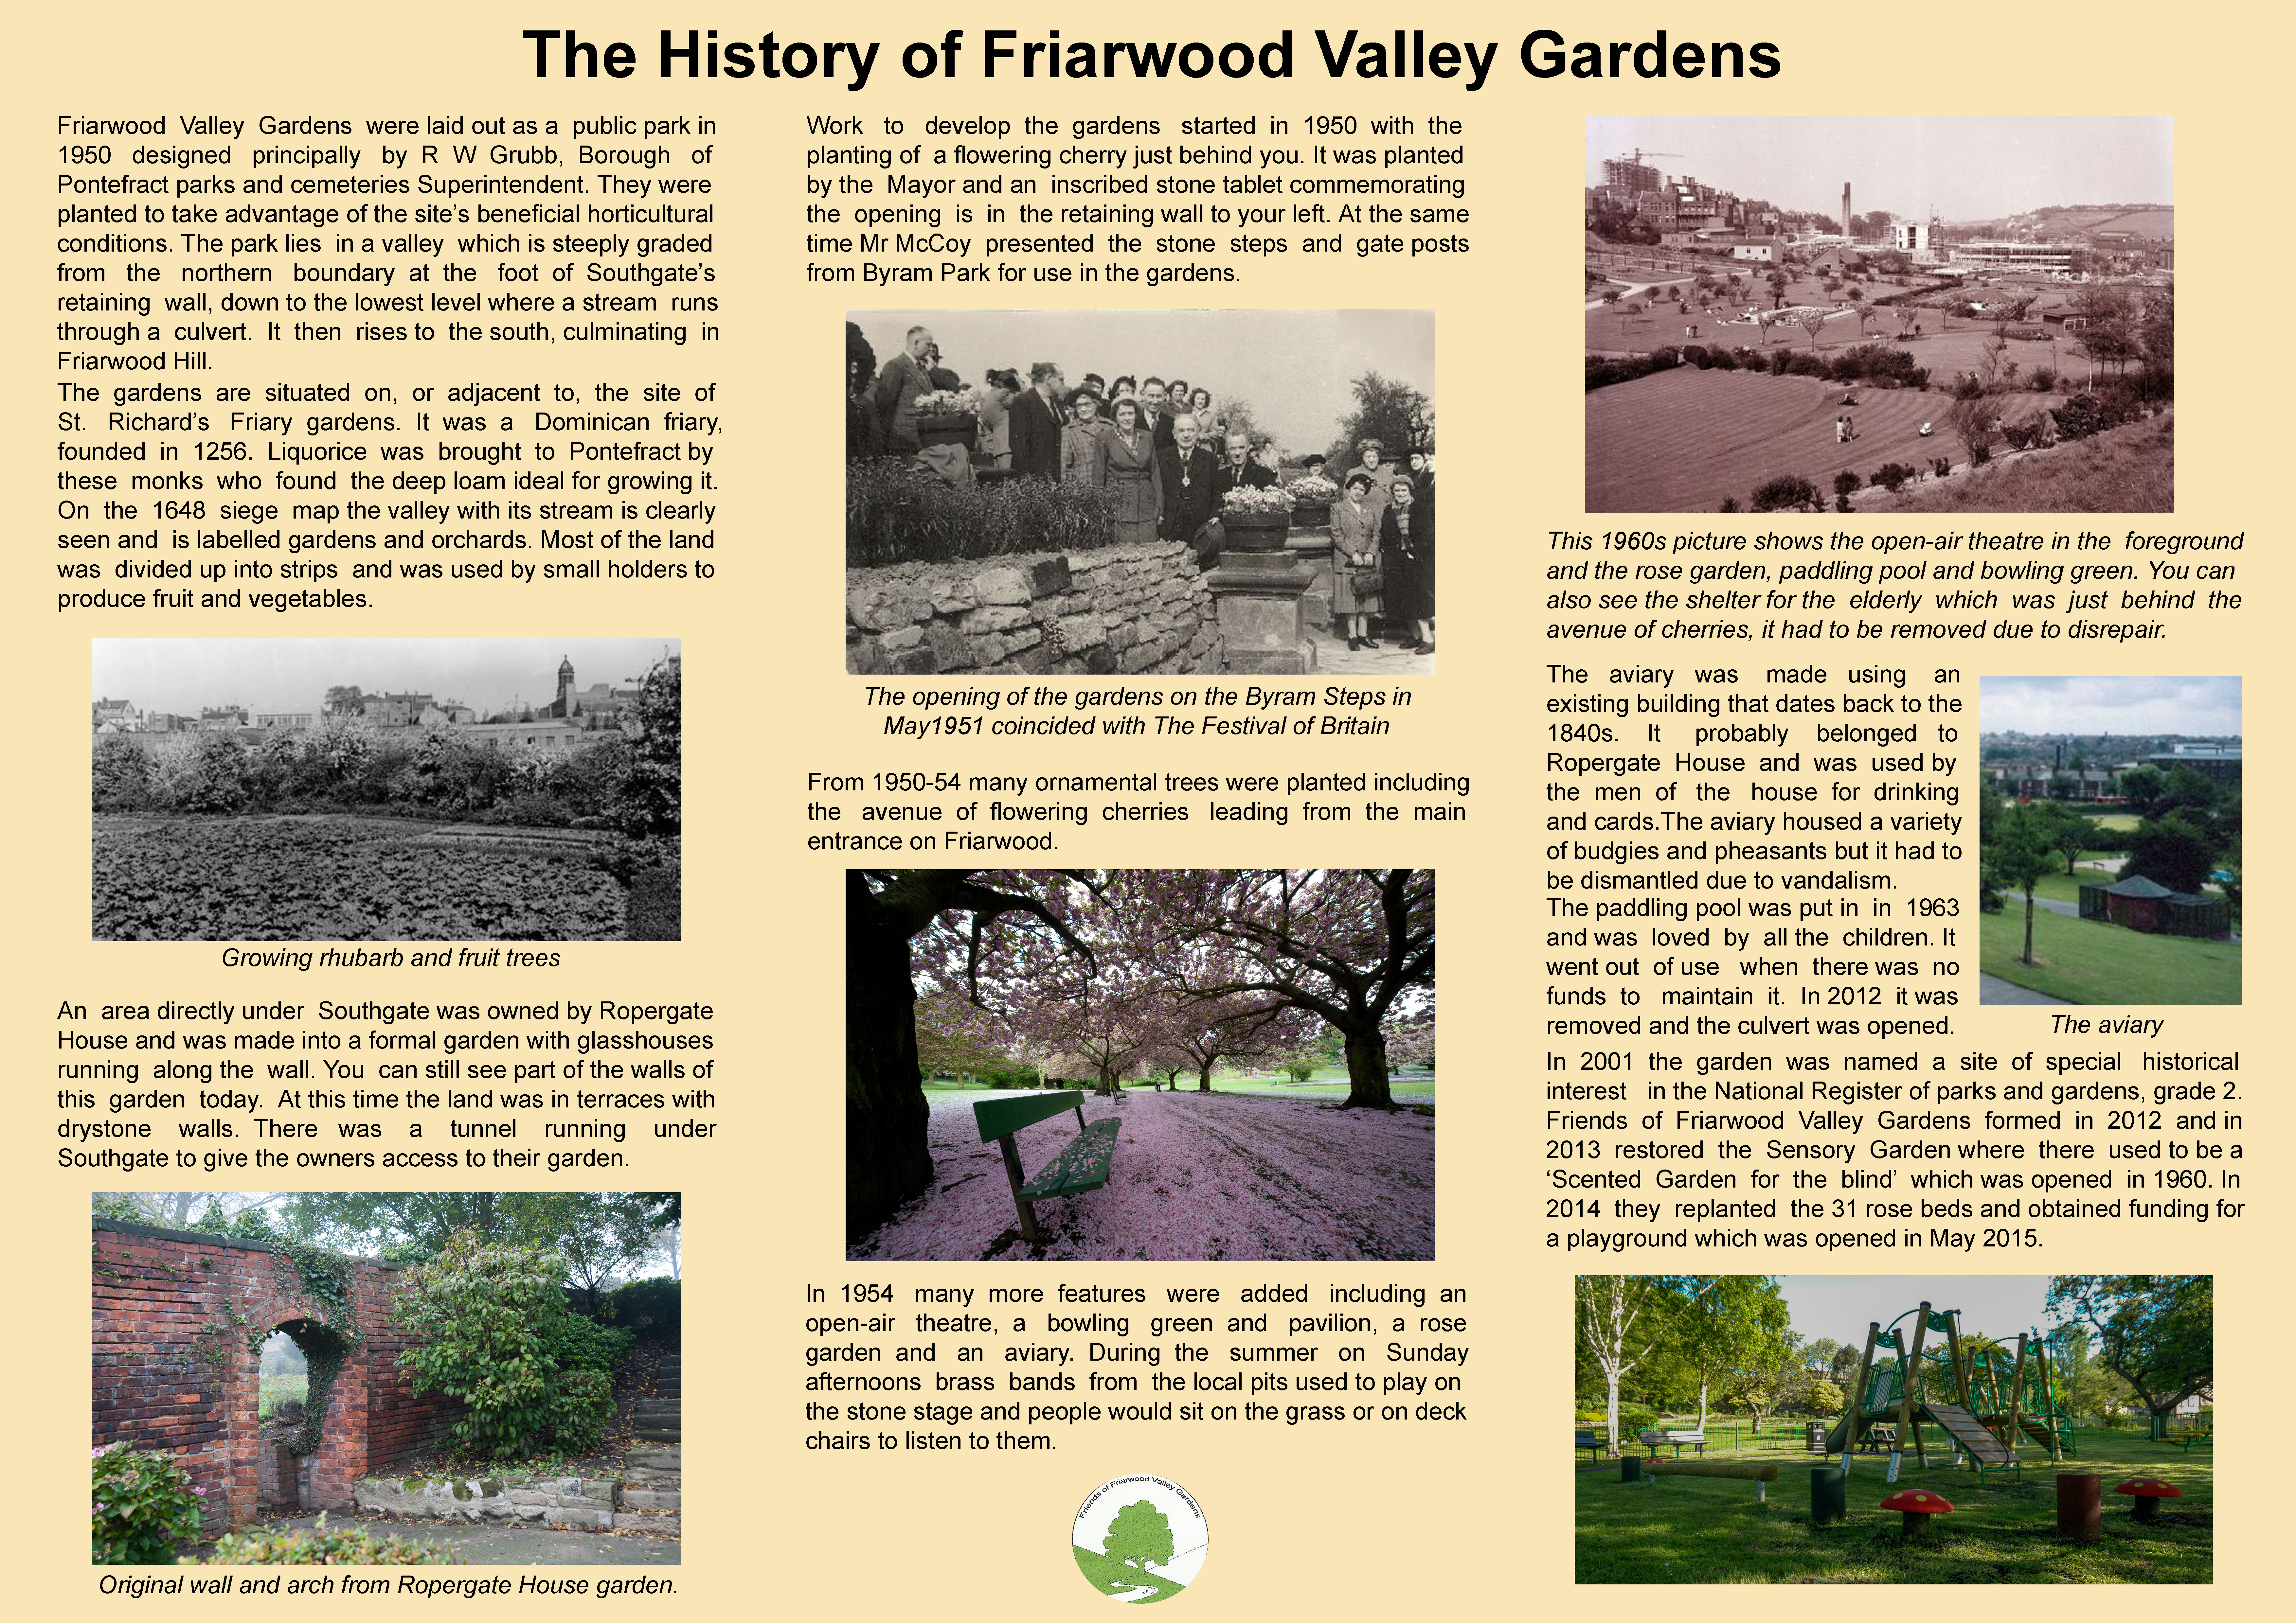 Friends of friarwood valley gardens information boards for Garden information sites